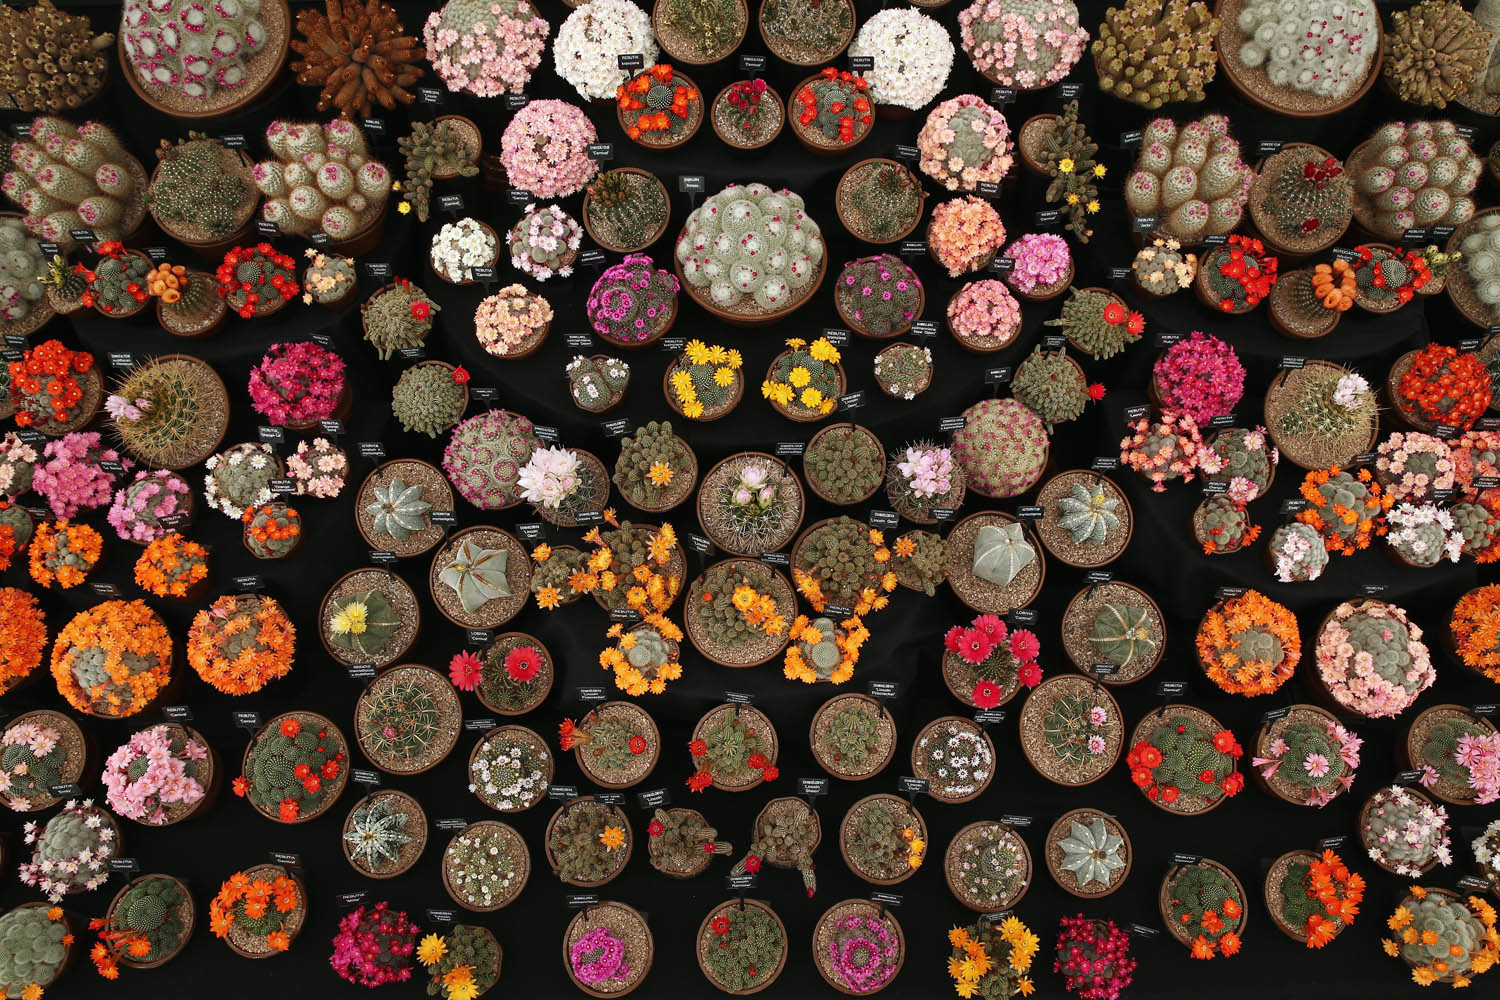 May 19, 2014. Cacti are displayed in the Great Pavilion at the 2014 Chelsea Flower Show at Royal Hospital Chelsea in London, England.